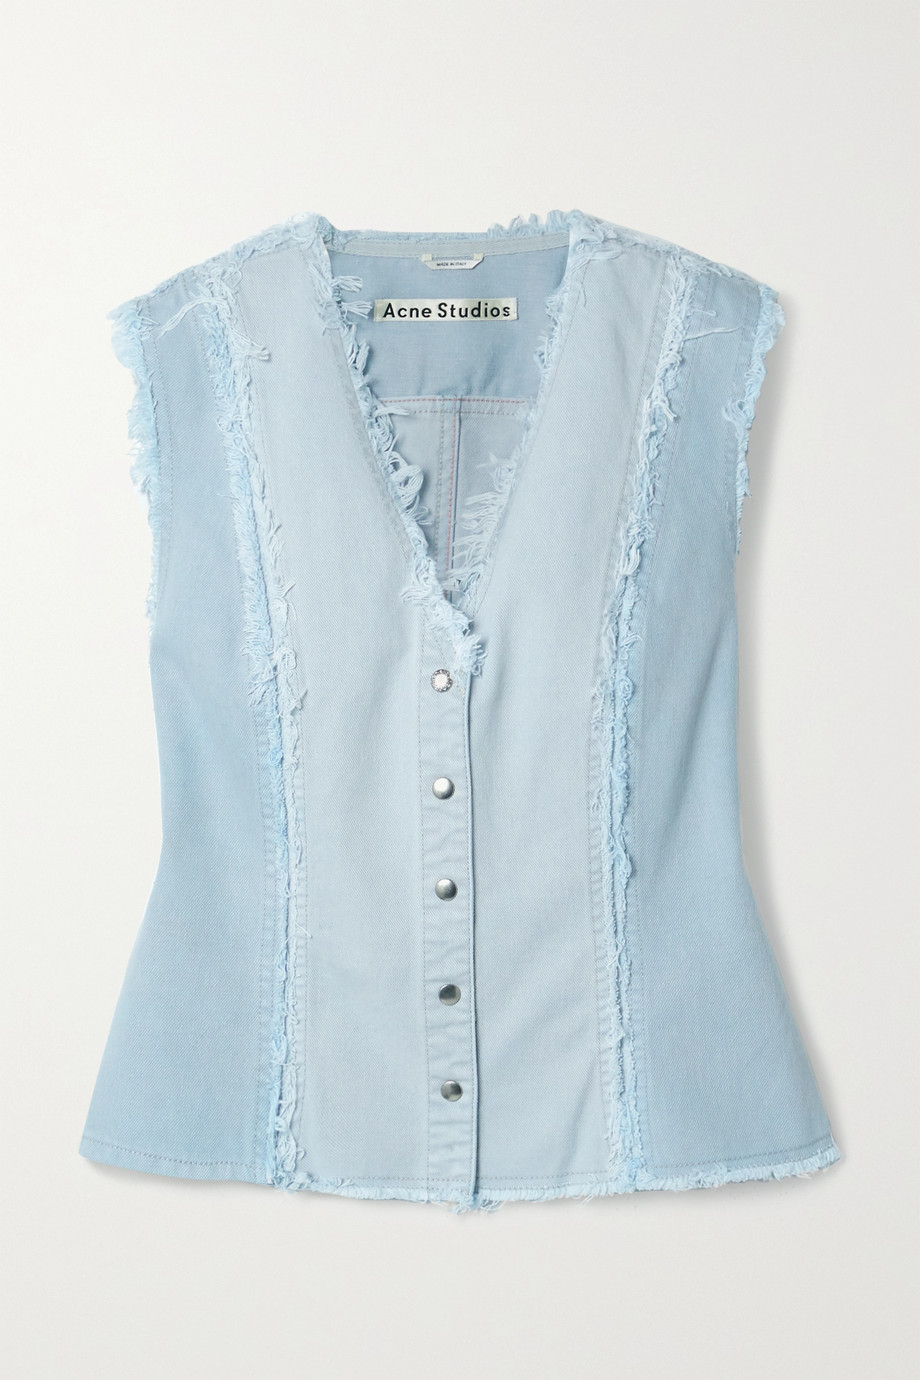 Acne Studios + NET SUSTAIN frayed patchwork organic denim vest